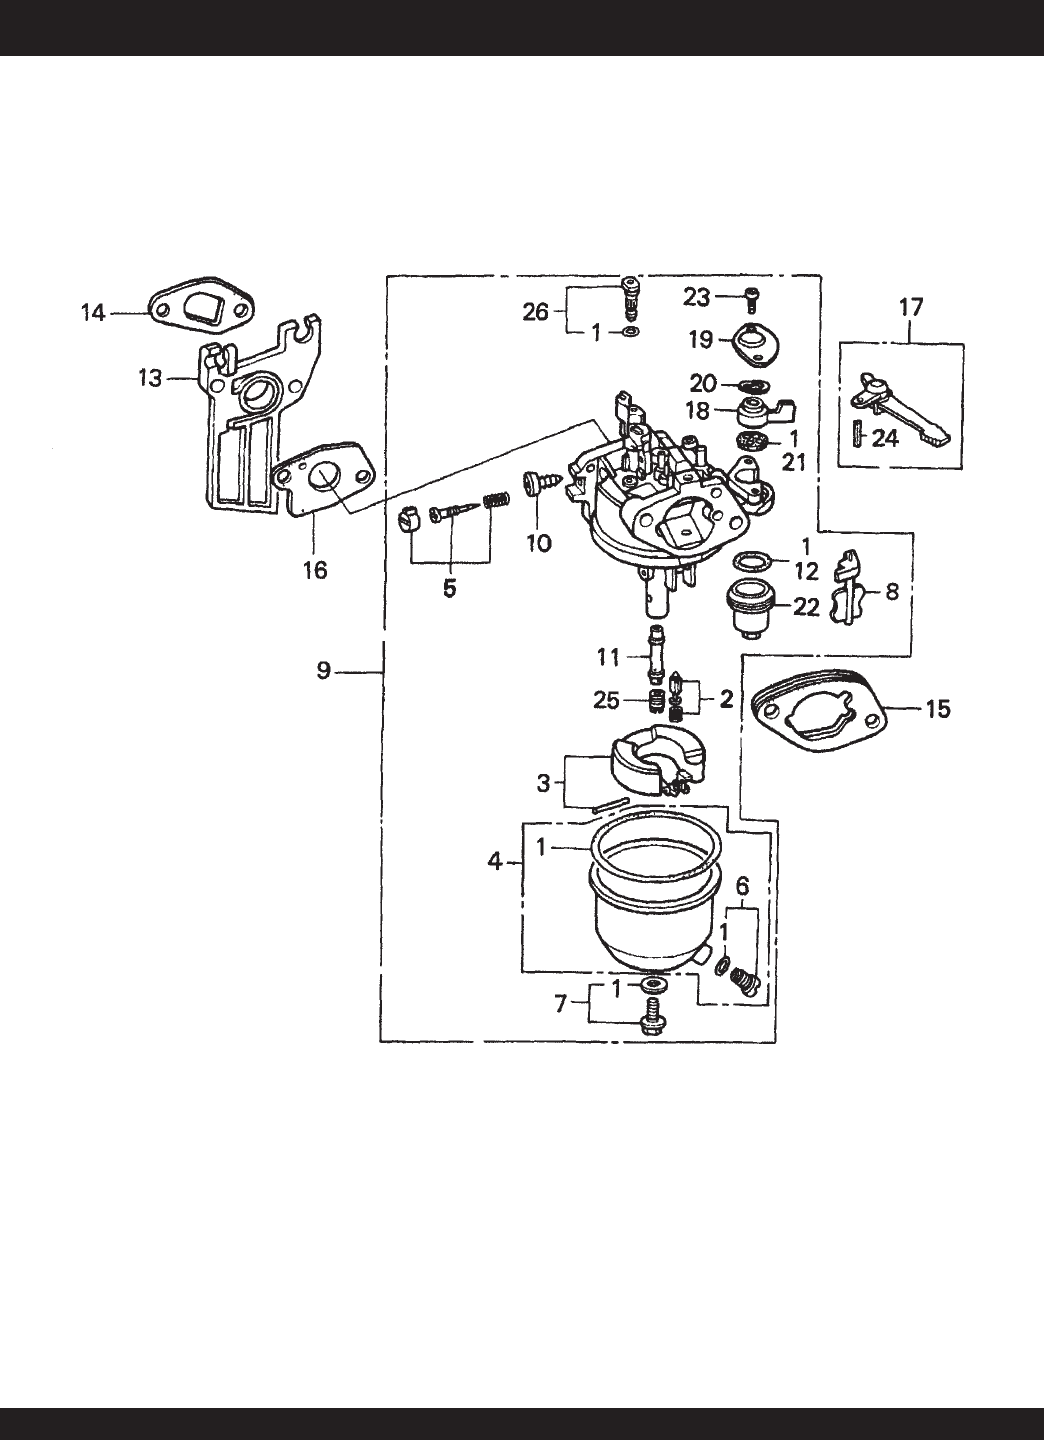 Stow Mixer Parts Diagram - Collection Of Wiring Diagram •